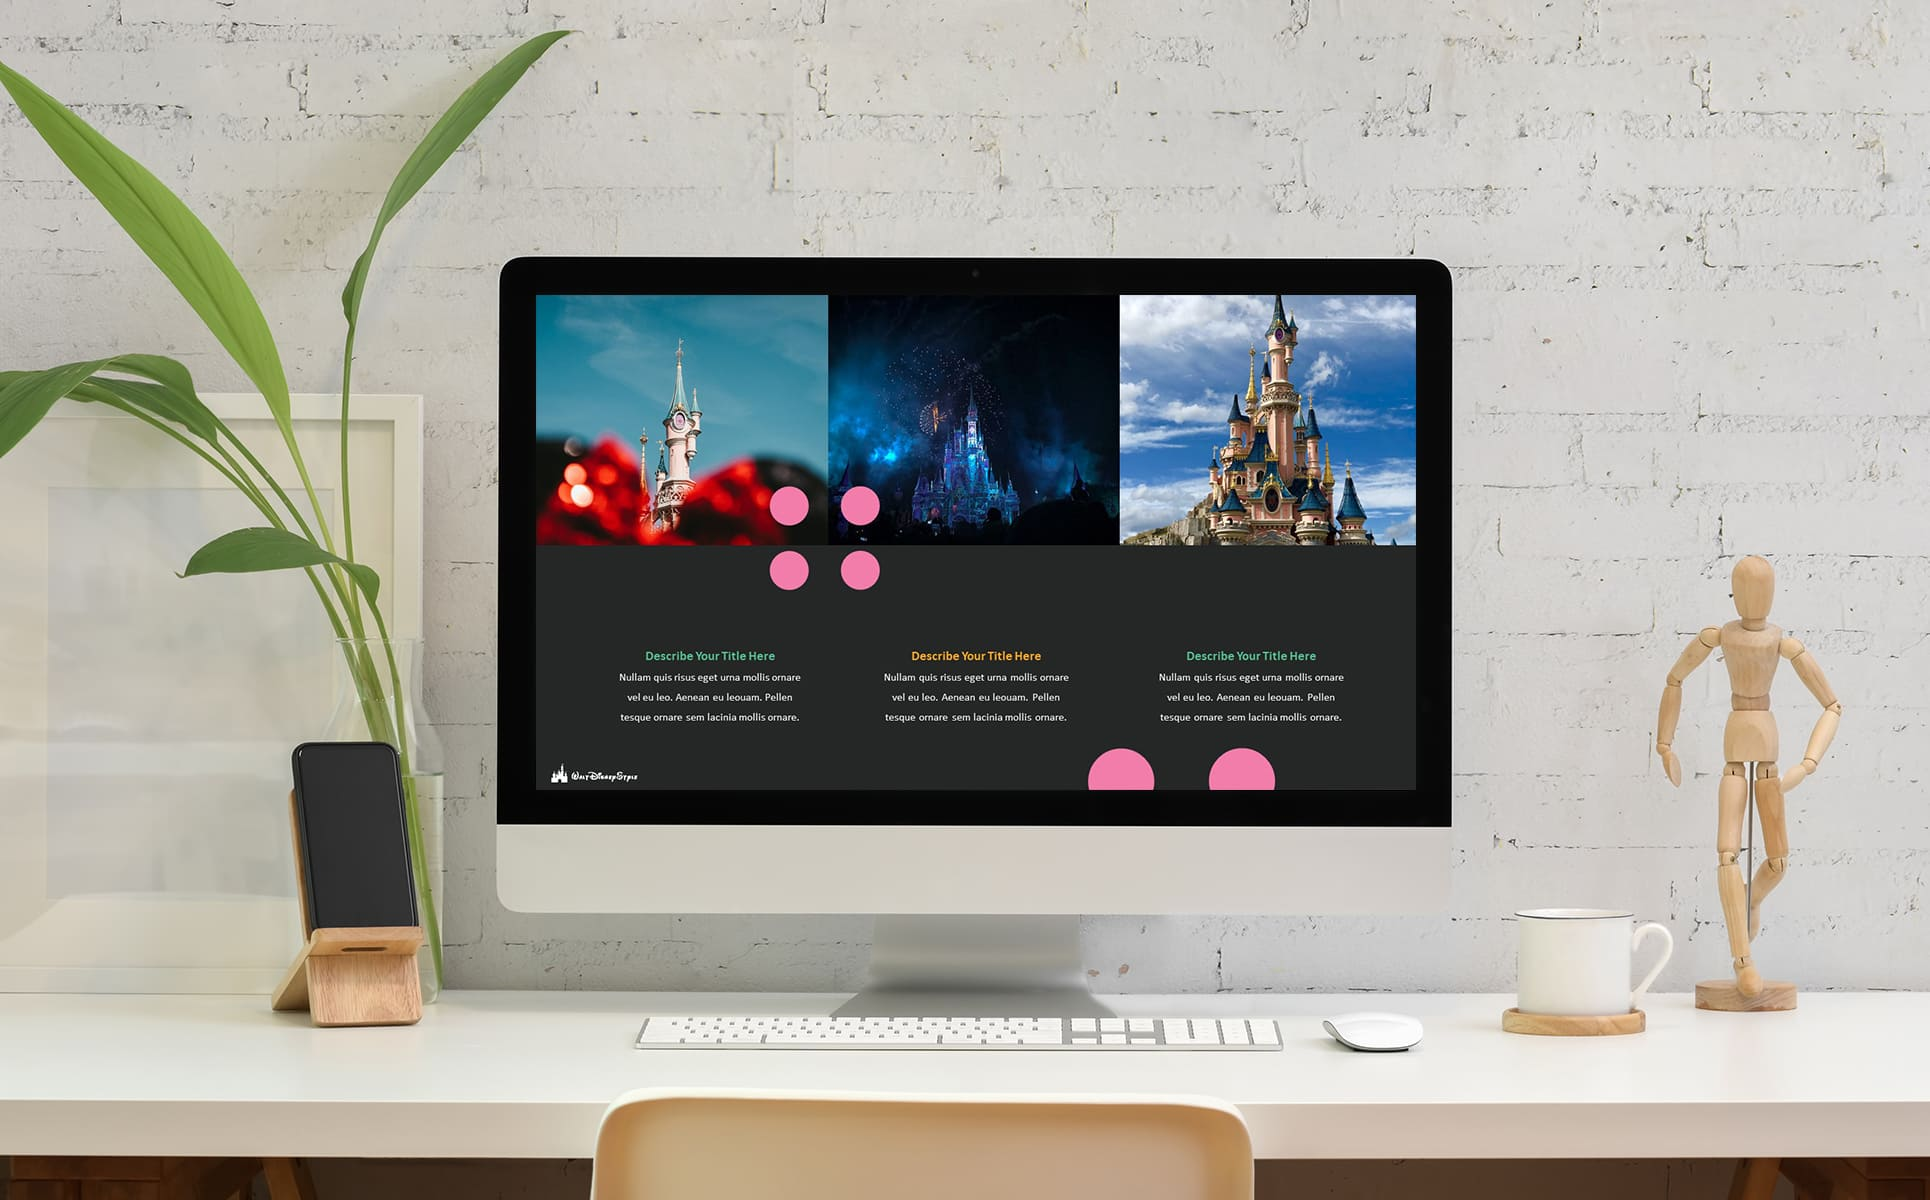 Disney Powerpoint Template. Monitor from your computer in a stylish setting.